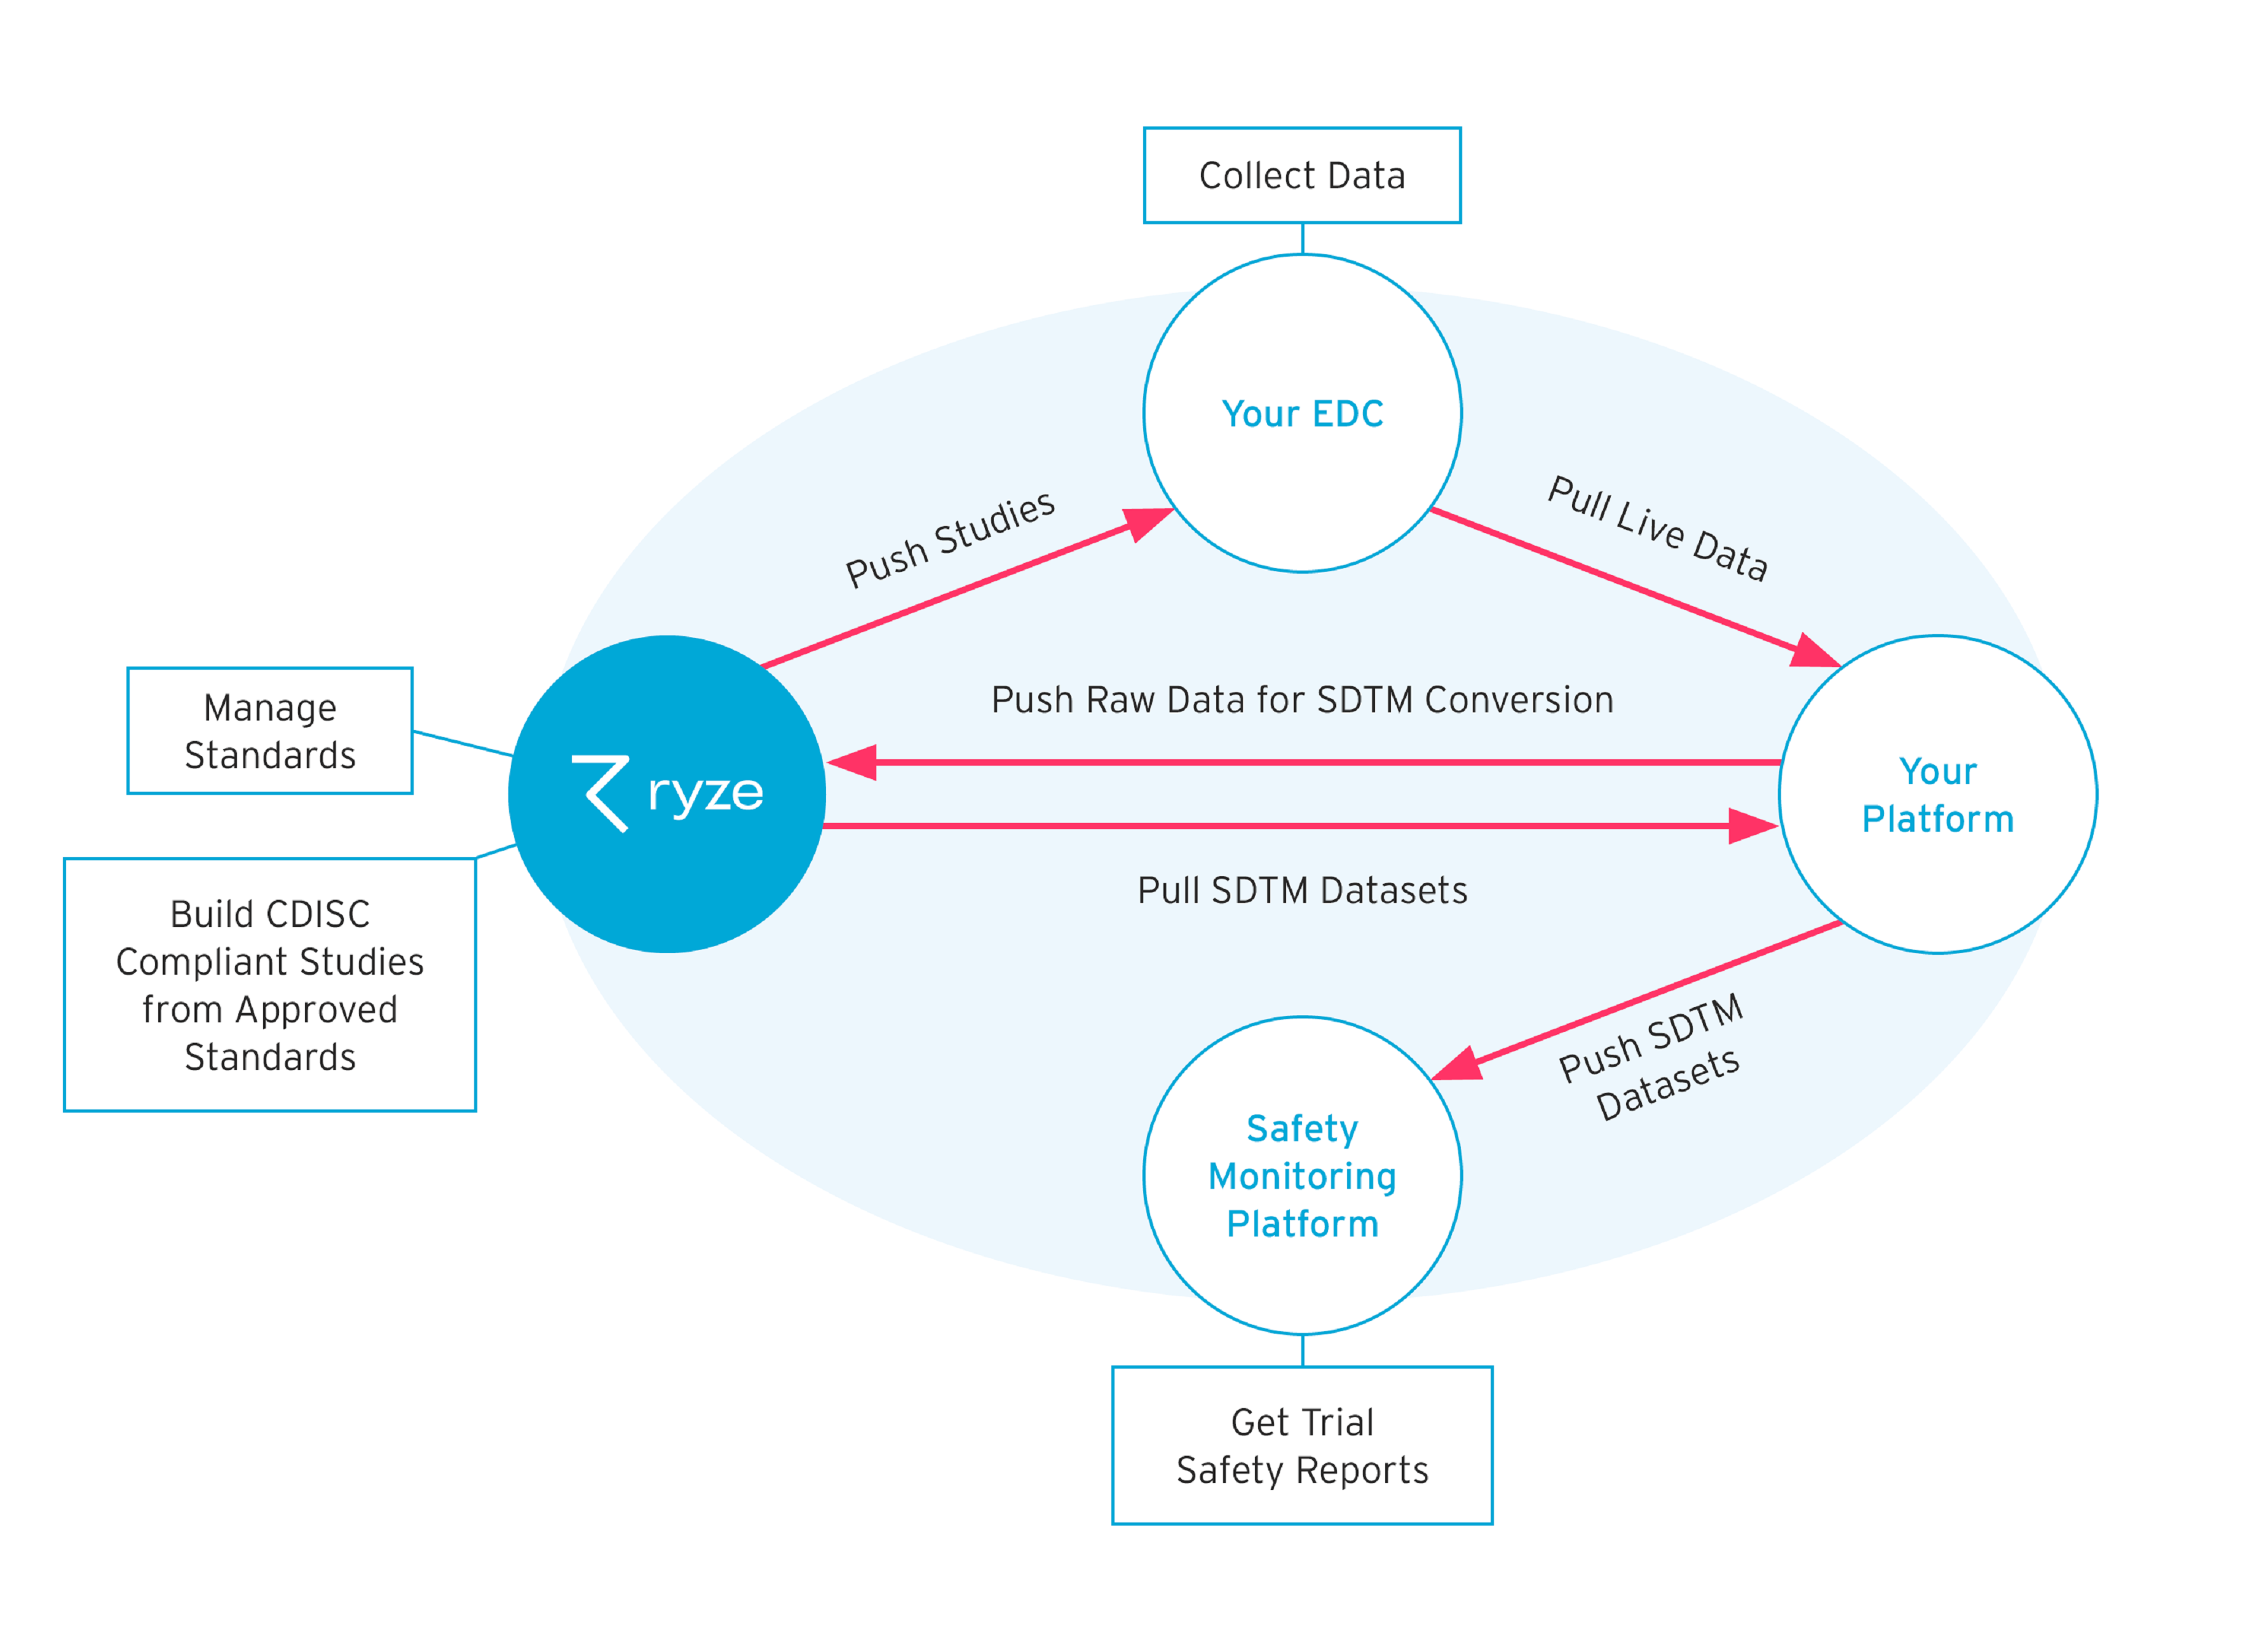 ryze integrations and automated processes